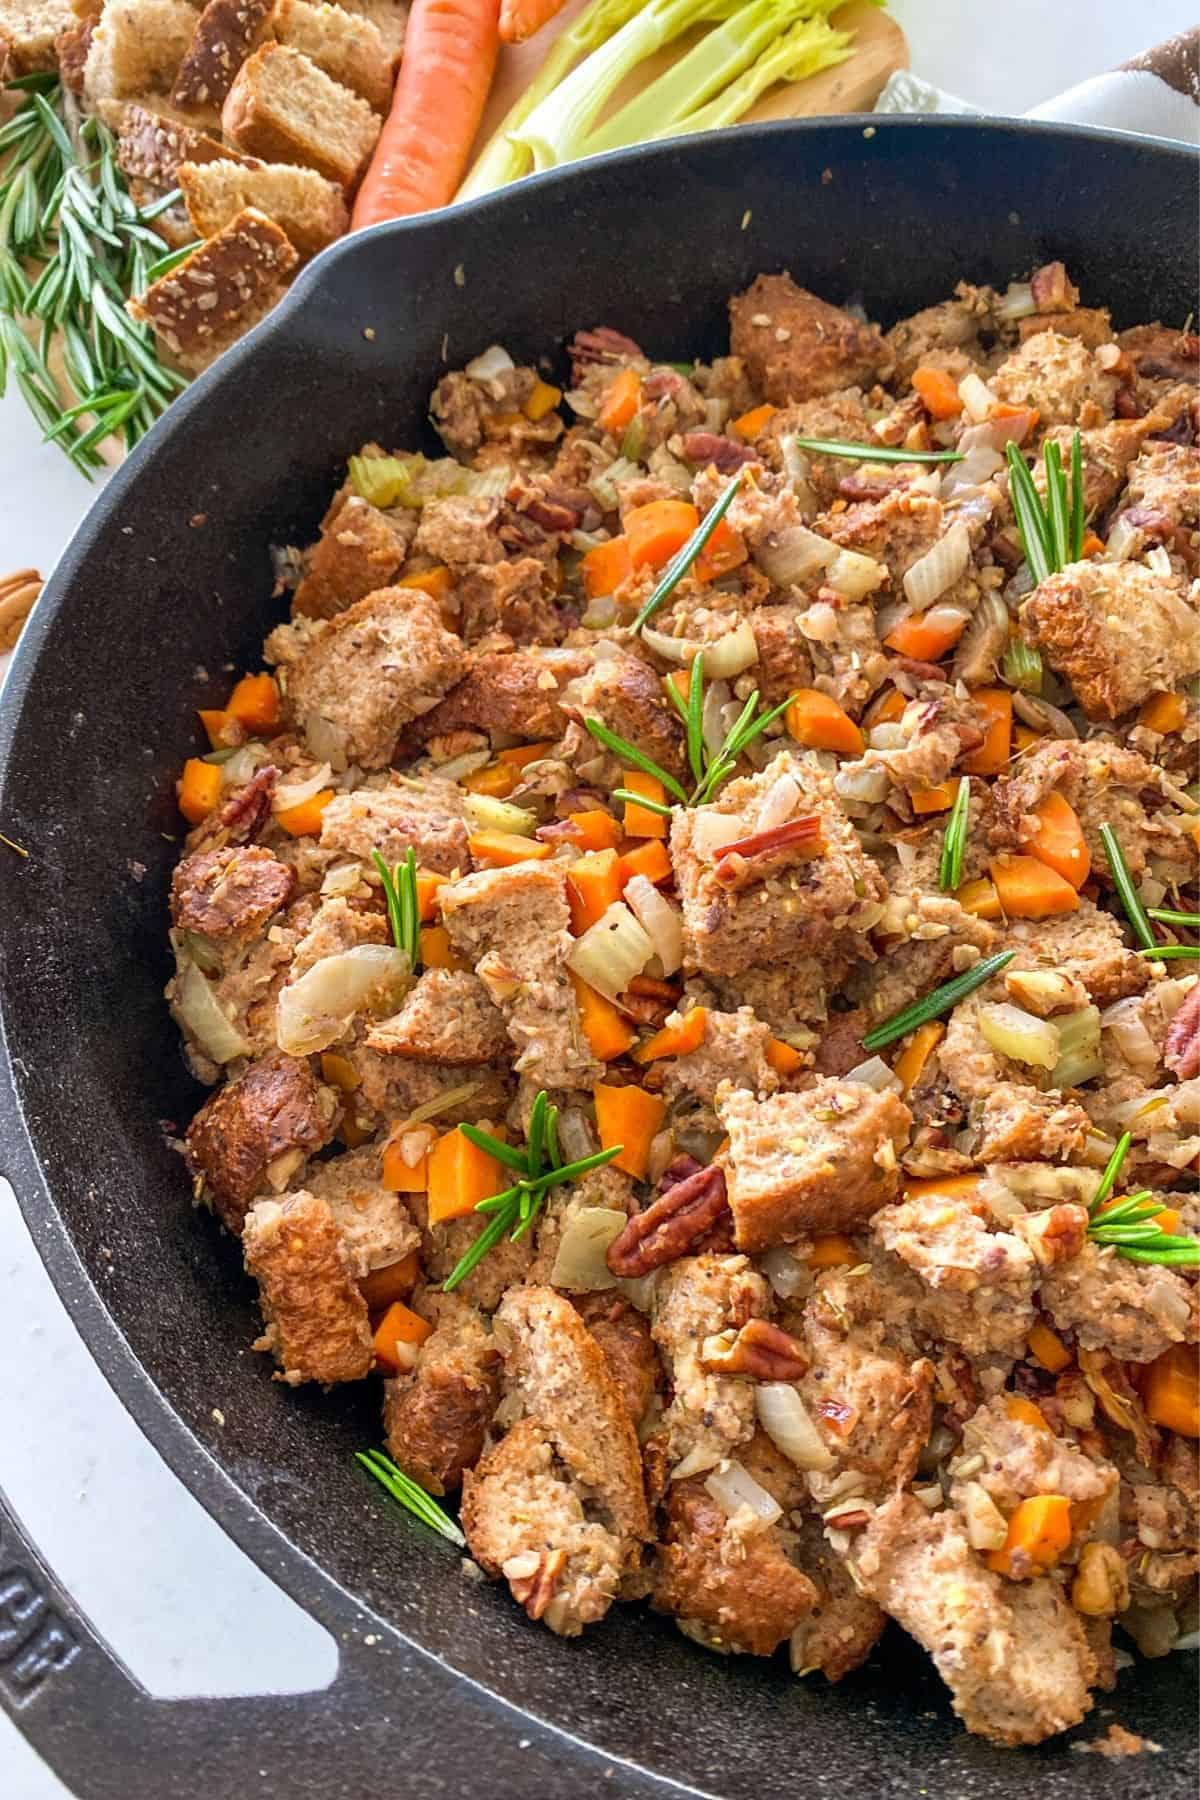 Vegan stuffing with bread, chopped veggies and fresh rosemary in cast iron pan.